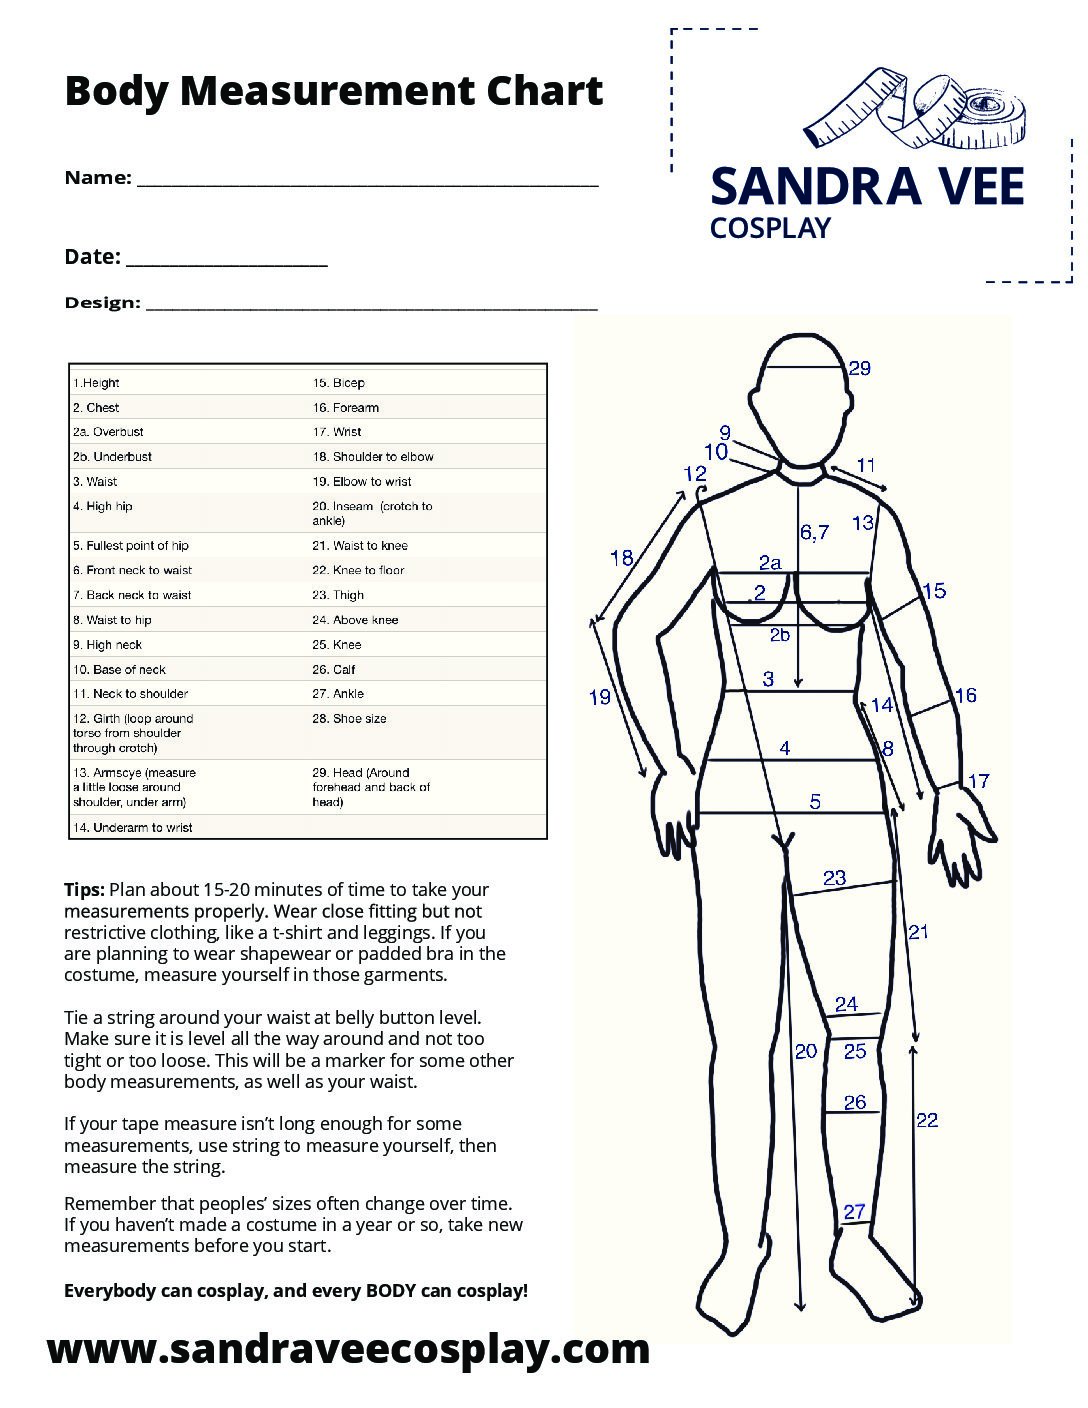 picture regarding Printable Body Measurement Chart for Sewing titled Cosplay Sewing Models - Sandra Vee Cosplay